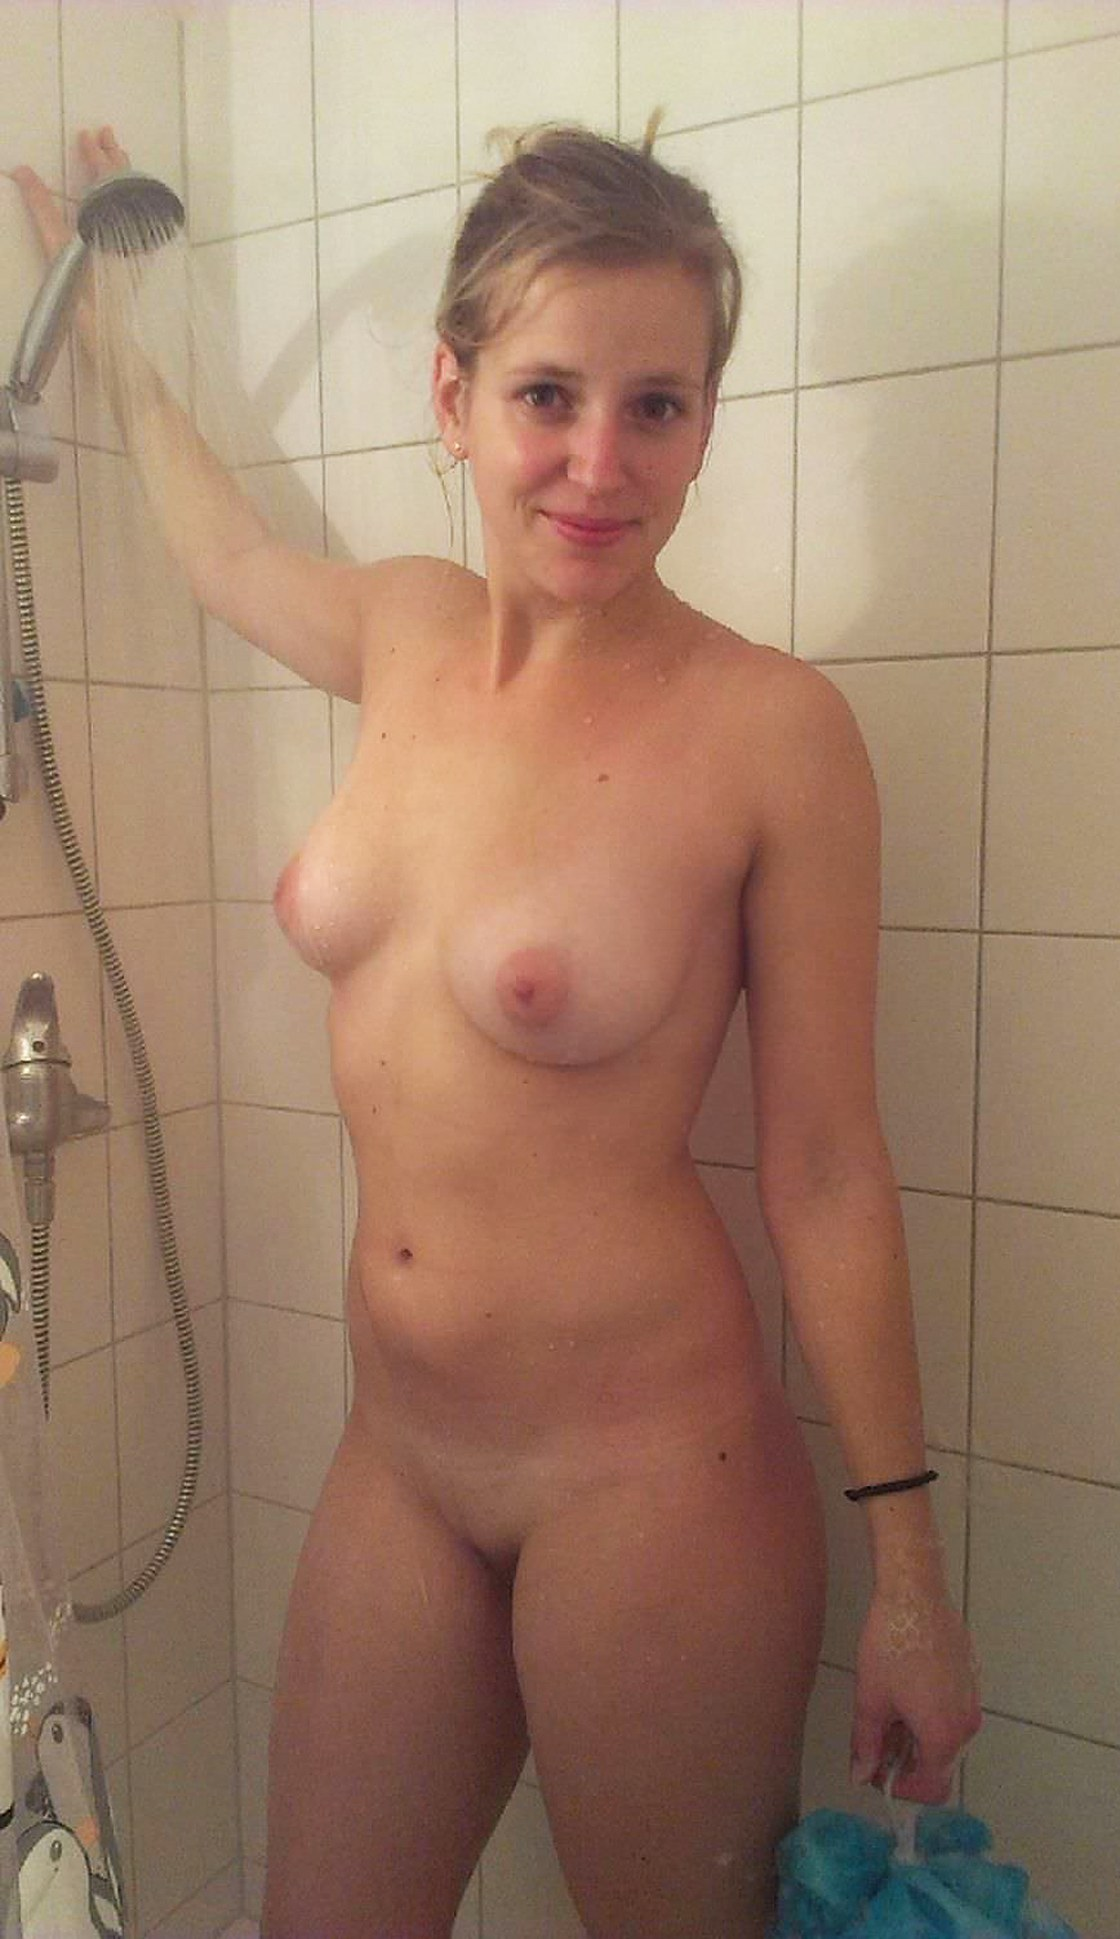 Amateur woman with sexy body in shower